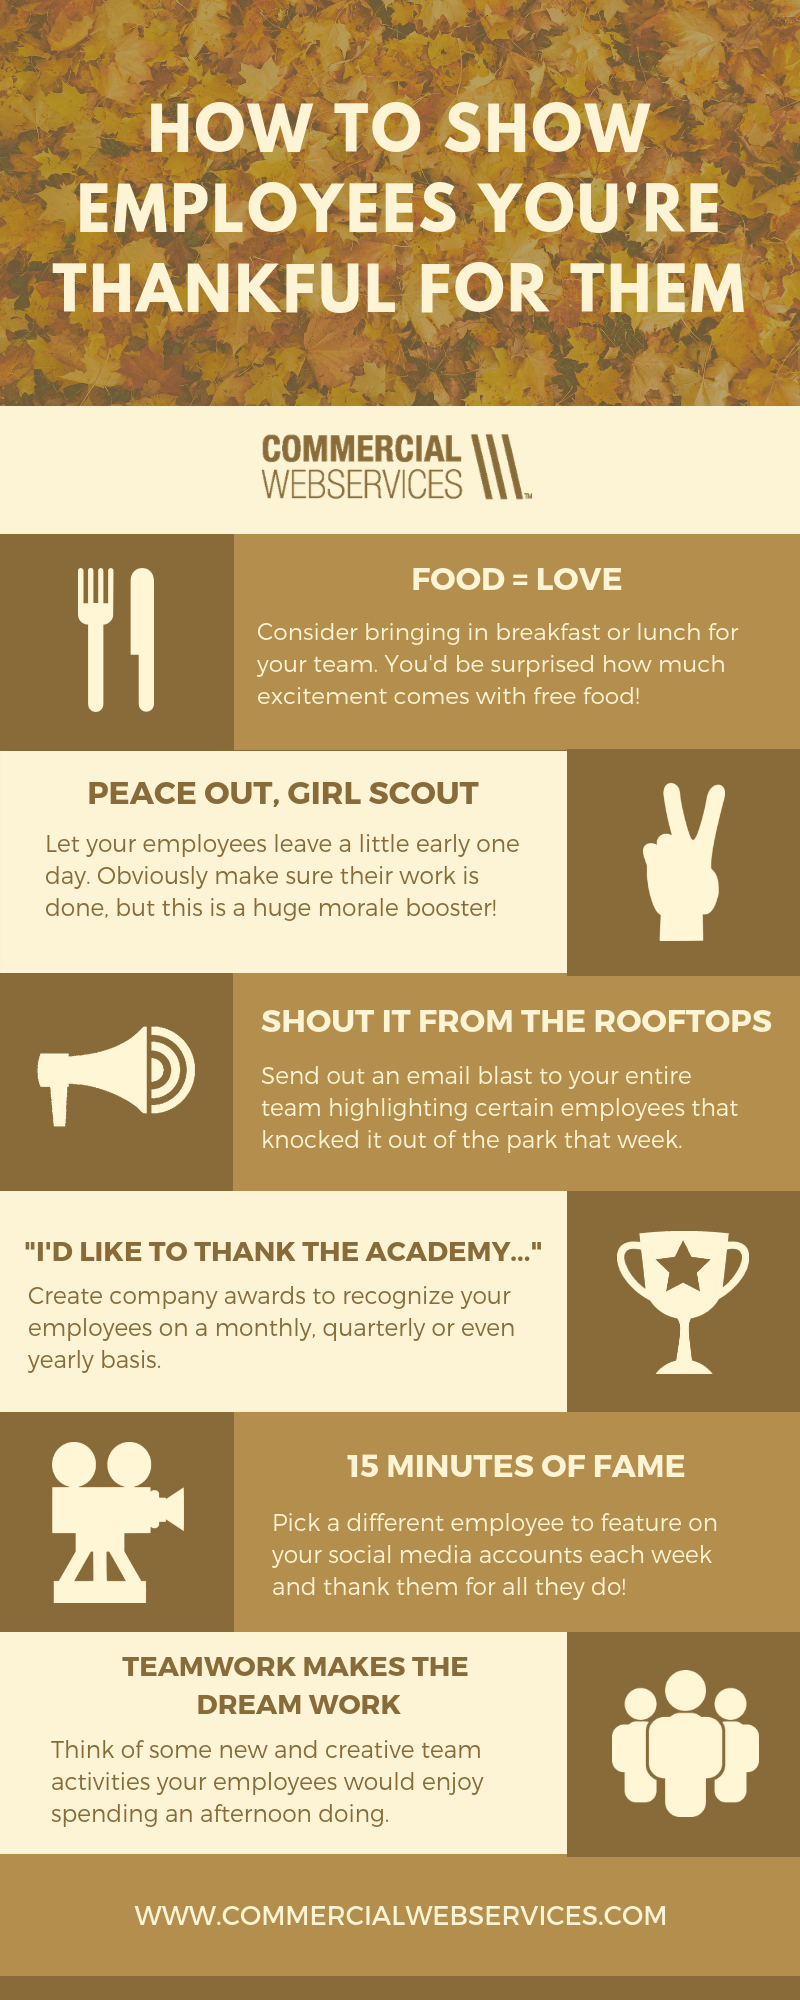 How to Show Employees You're Thankful Infographic